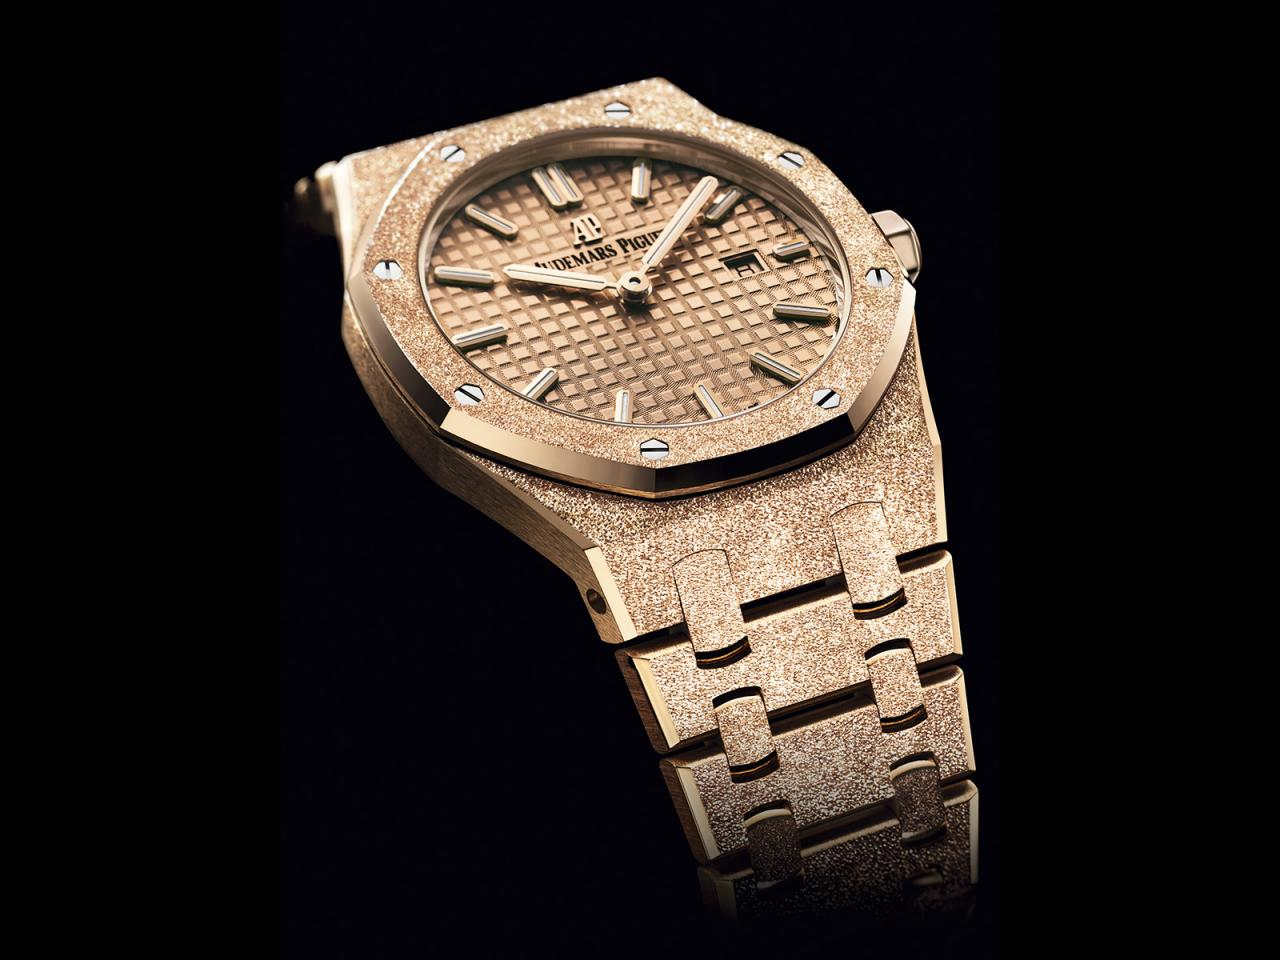 Royal Oak Automatic Frosted Gold RO_67653OR-GG-1263OR-02